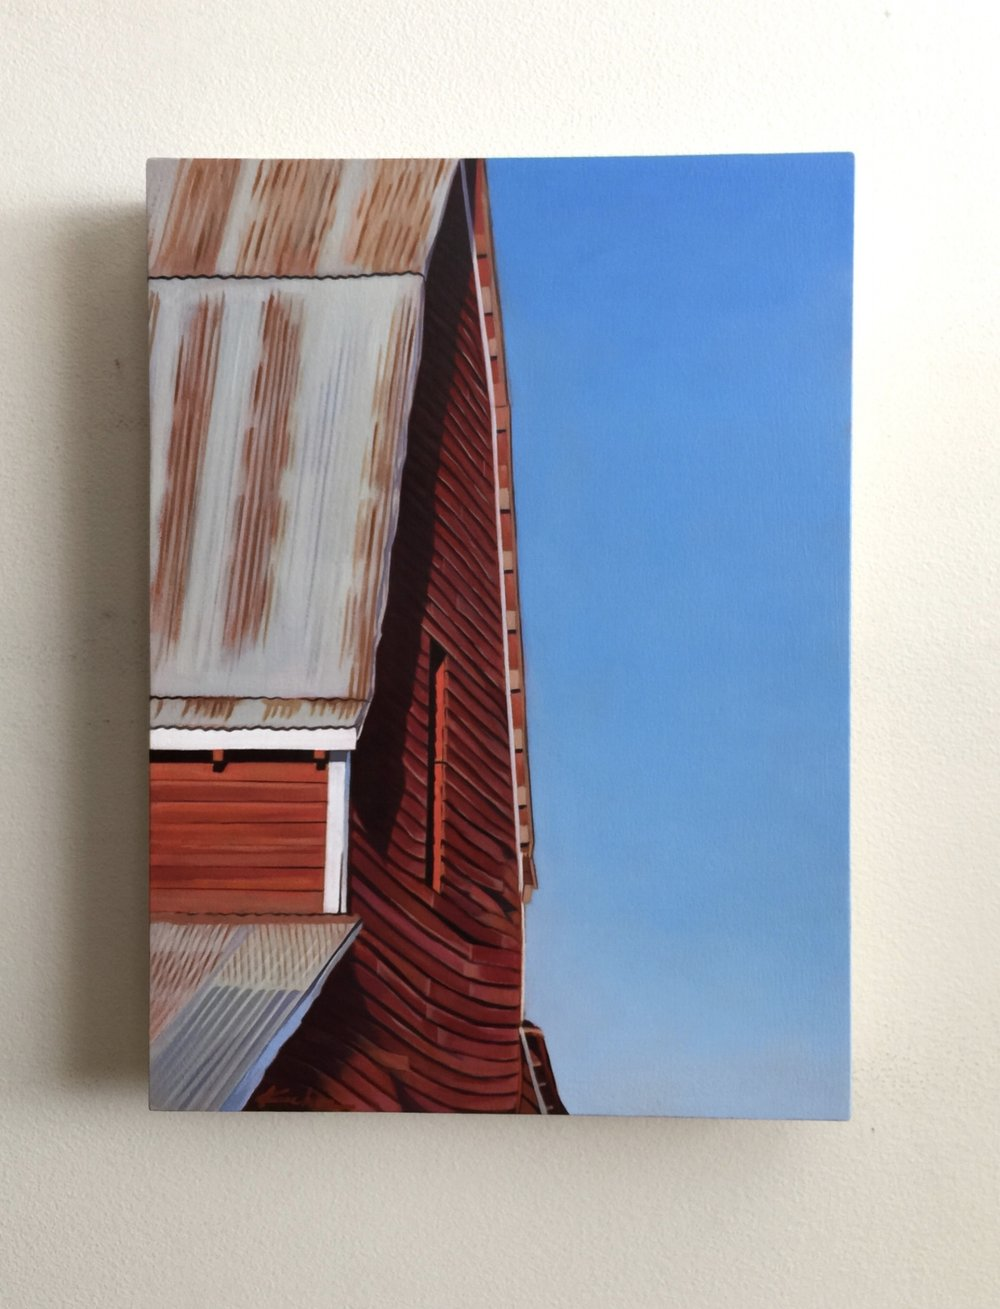 "AVAILABLE Title: SOPHIE'S BARN 10.5 x 14.5, Oil on Board I was about half way through painting this small, big barn when a friend stopped by my studio. She looked at it and without missing a beat asked, ""Is that Sophie's barn?"" I said, ""I don't know Sophie"", but continued to tell her the location of the barn in Midway, Utah. Upon hearing where the barn is located she said, ""Yup, that's Sophie's barn."" I replied, ""Well, I think the title of this one should be Sophie's Barn."""